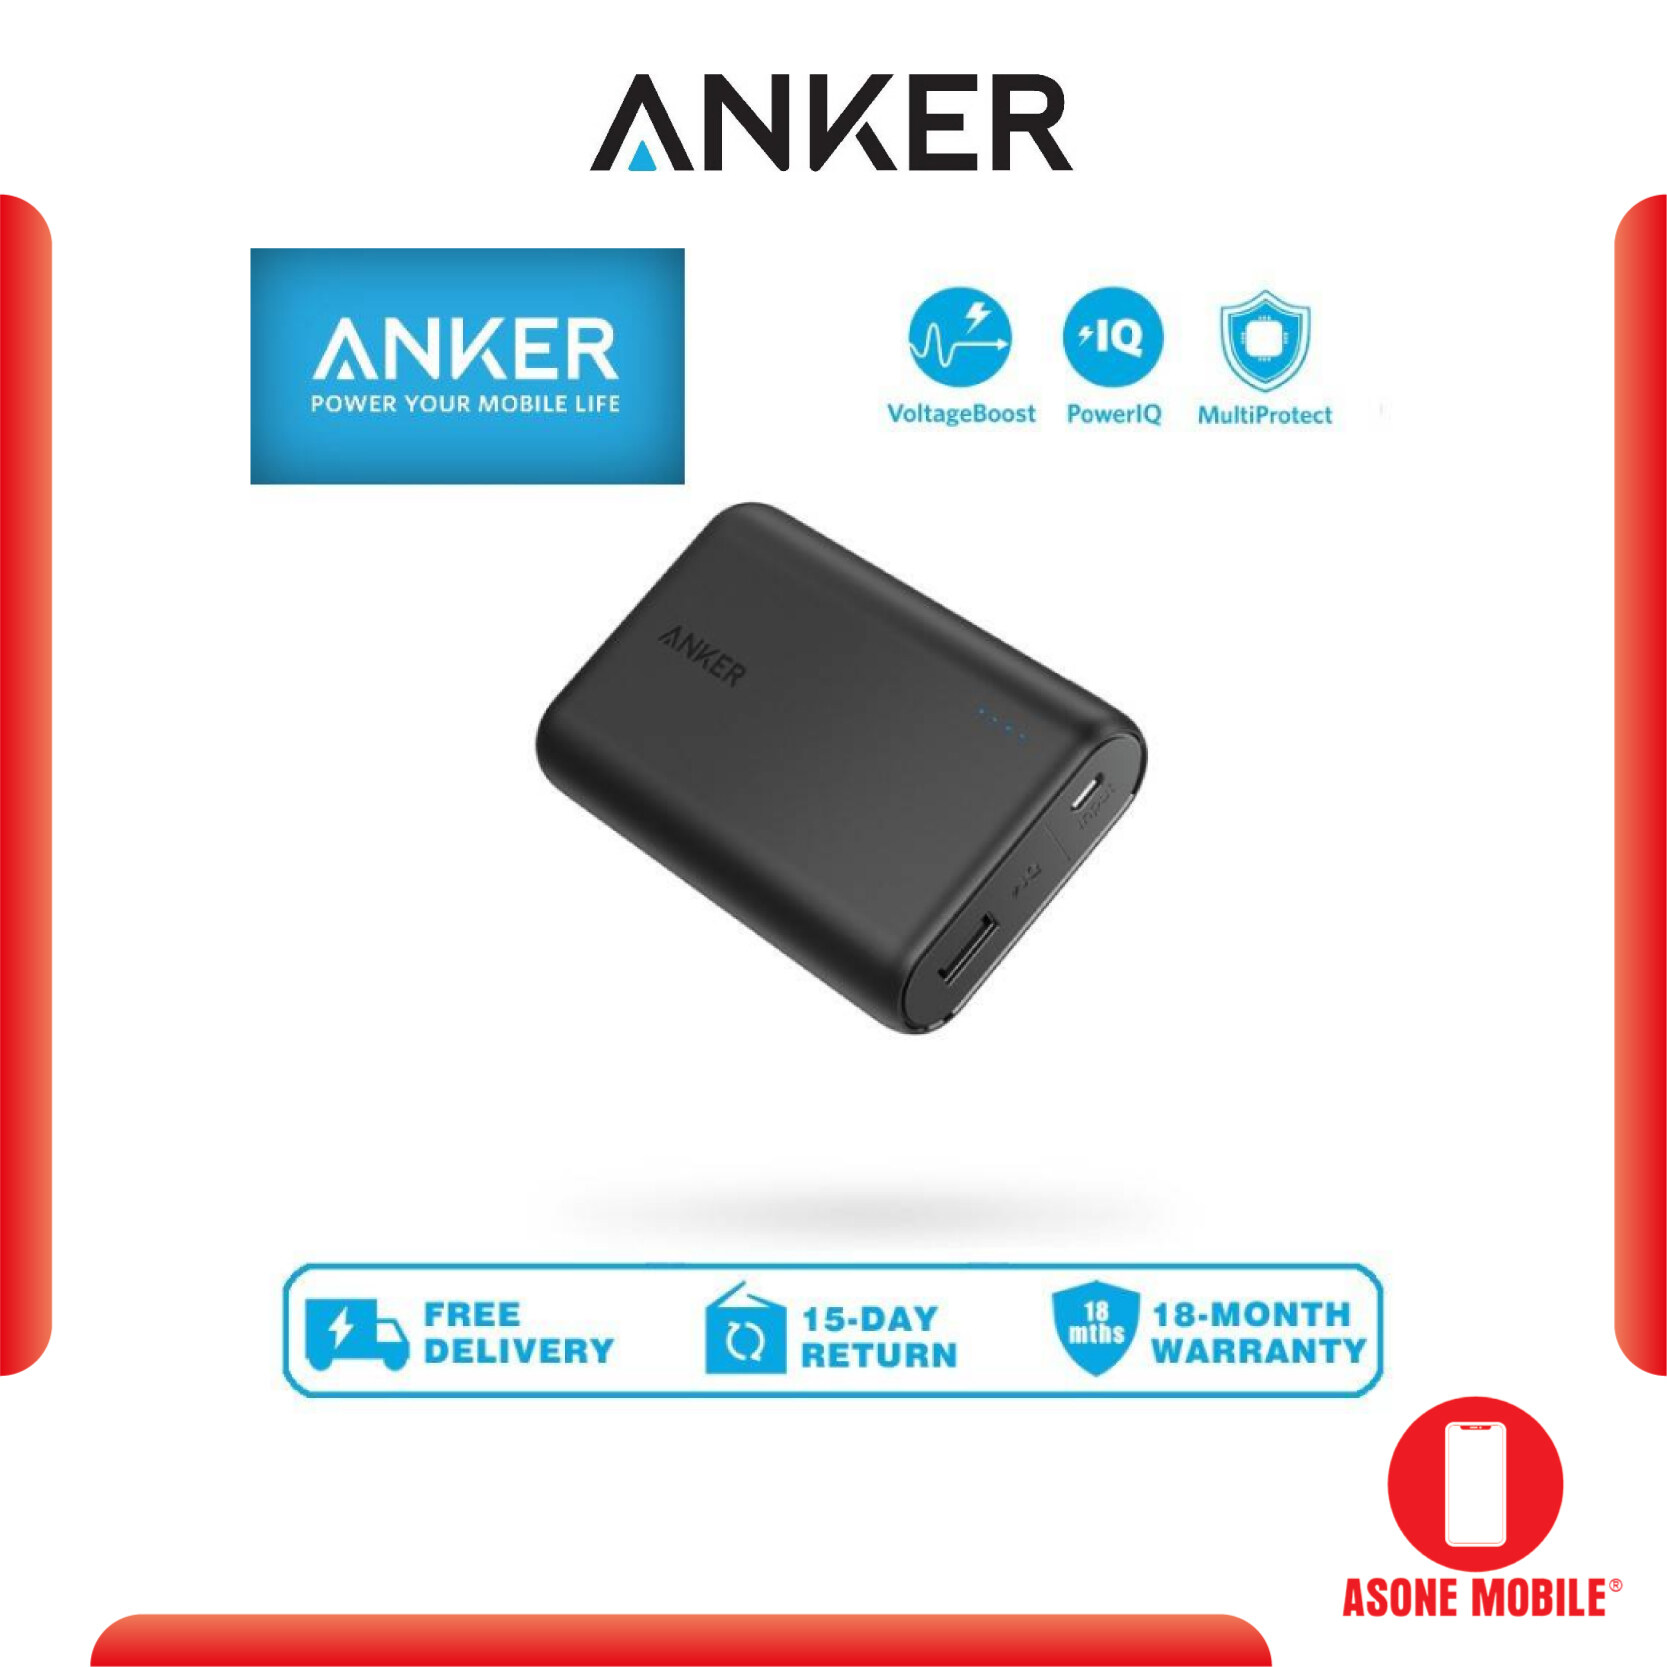 Original Anker A1263 PowerCore 10000mAh Compact Portable Charger Power Bank with VoltageBoost